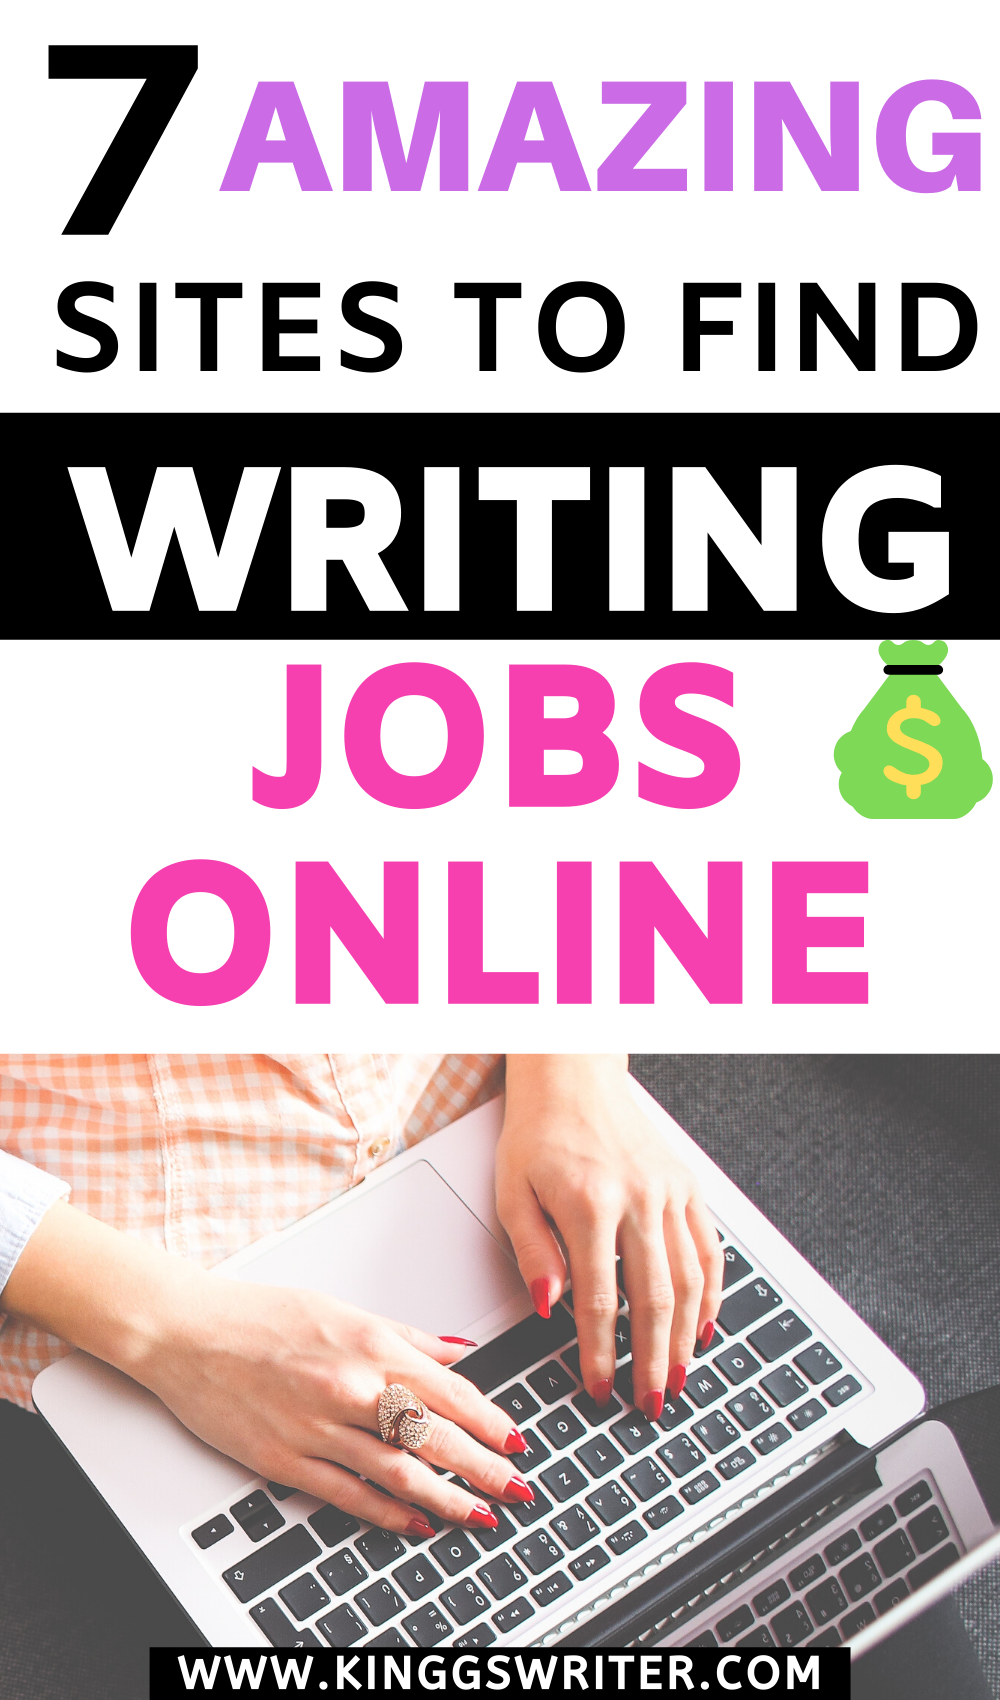 Writing Jobs From Home 7 Freelance Writing Websites To Make Money From Home In 2020 Make Money From Pinterest Make Easy Money Online Writing Jobs